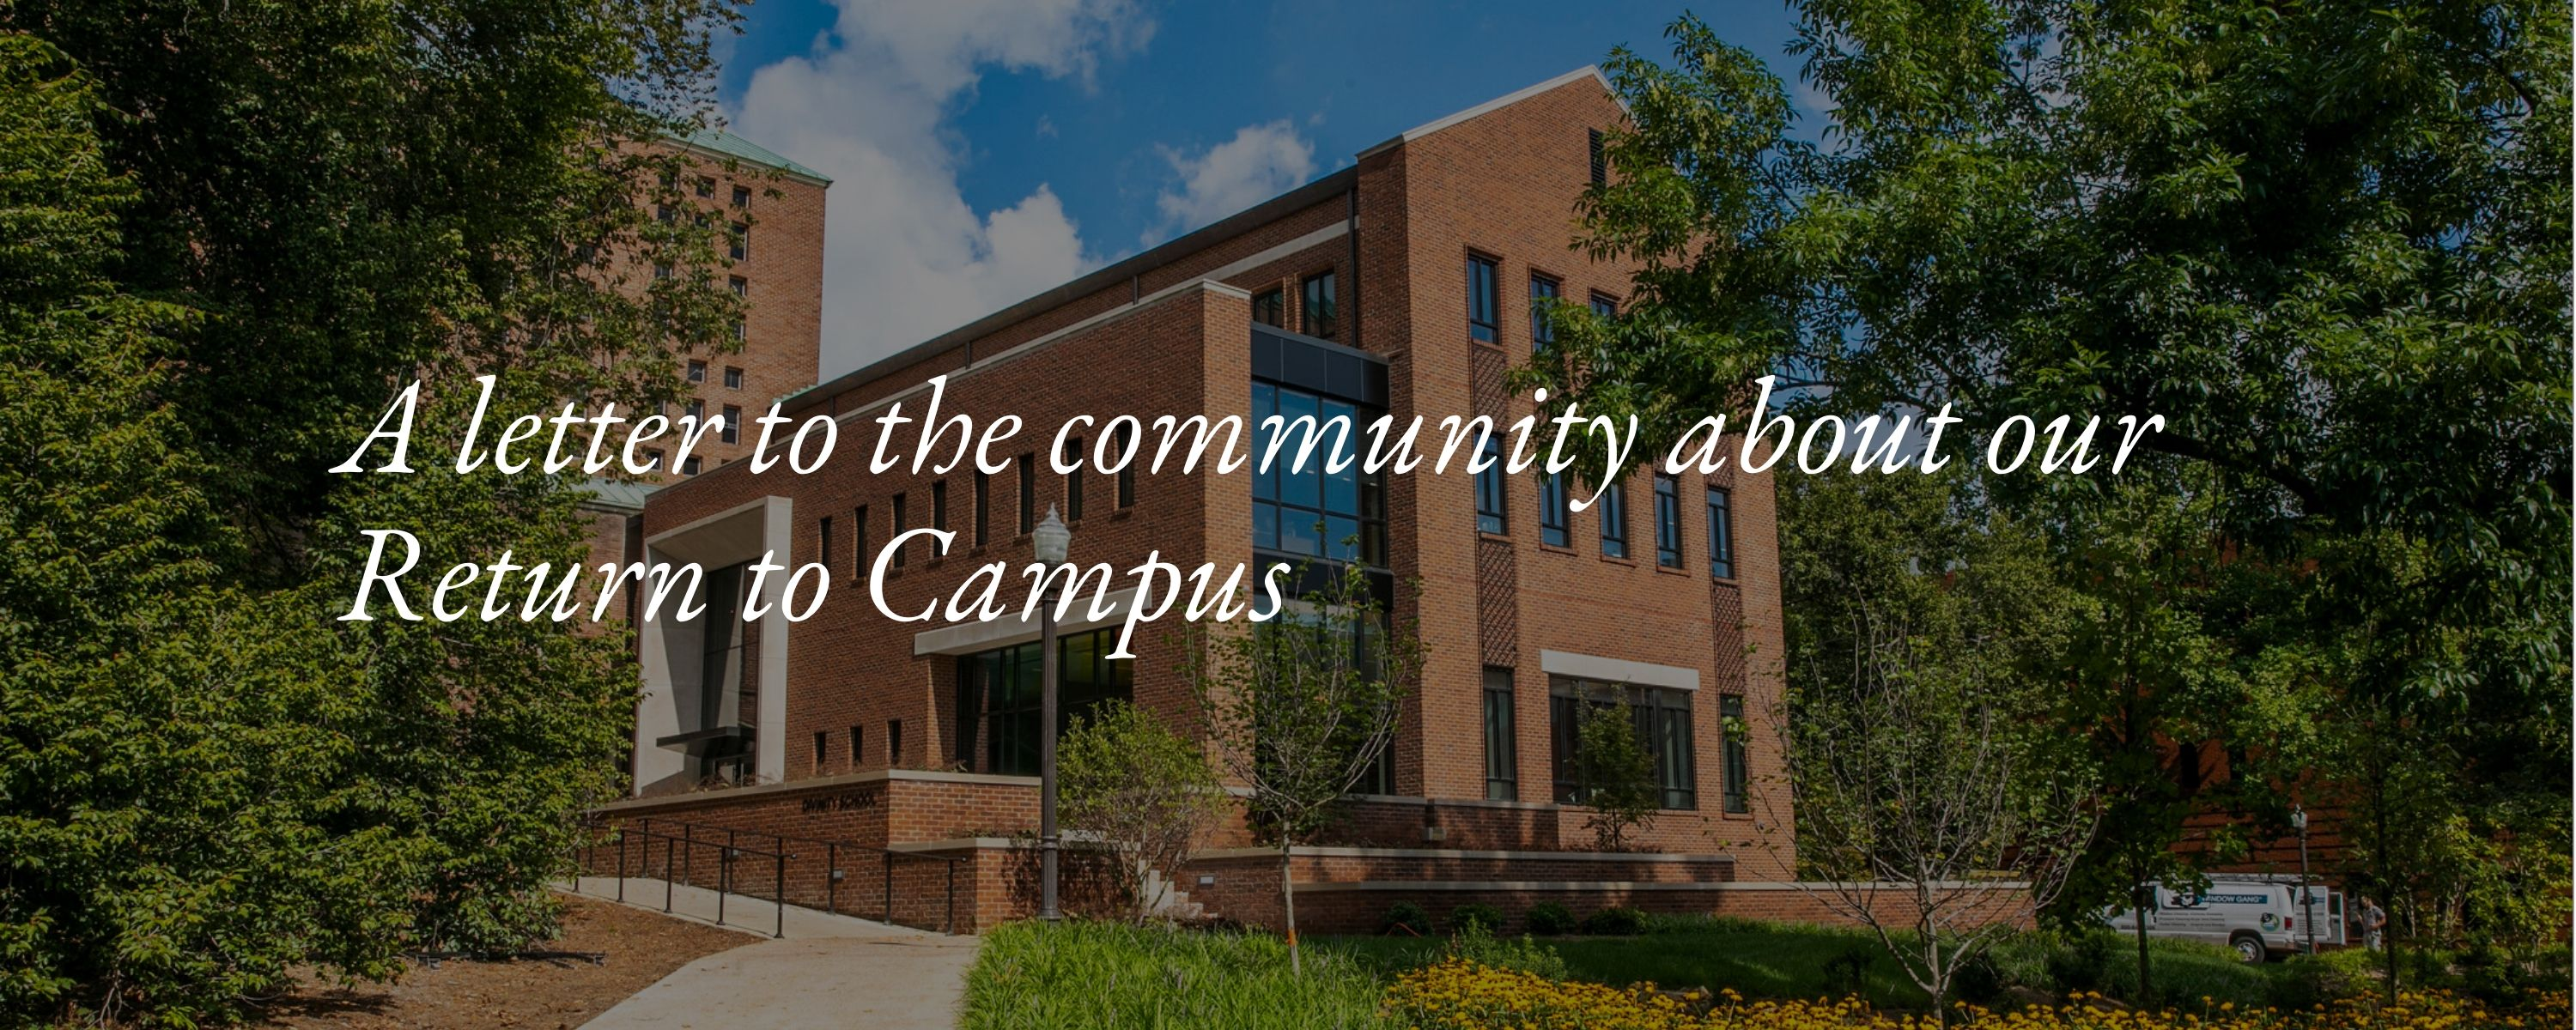 return-campus-web-banner